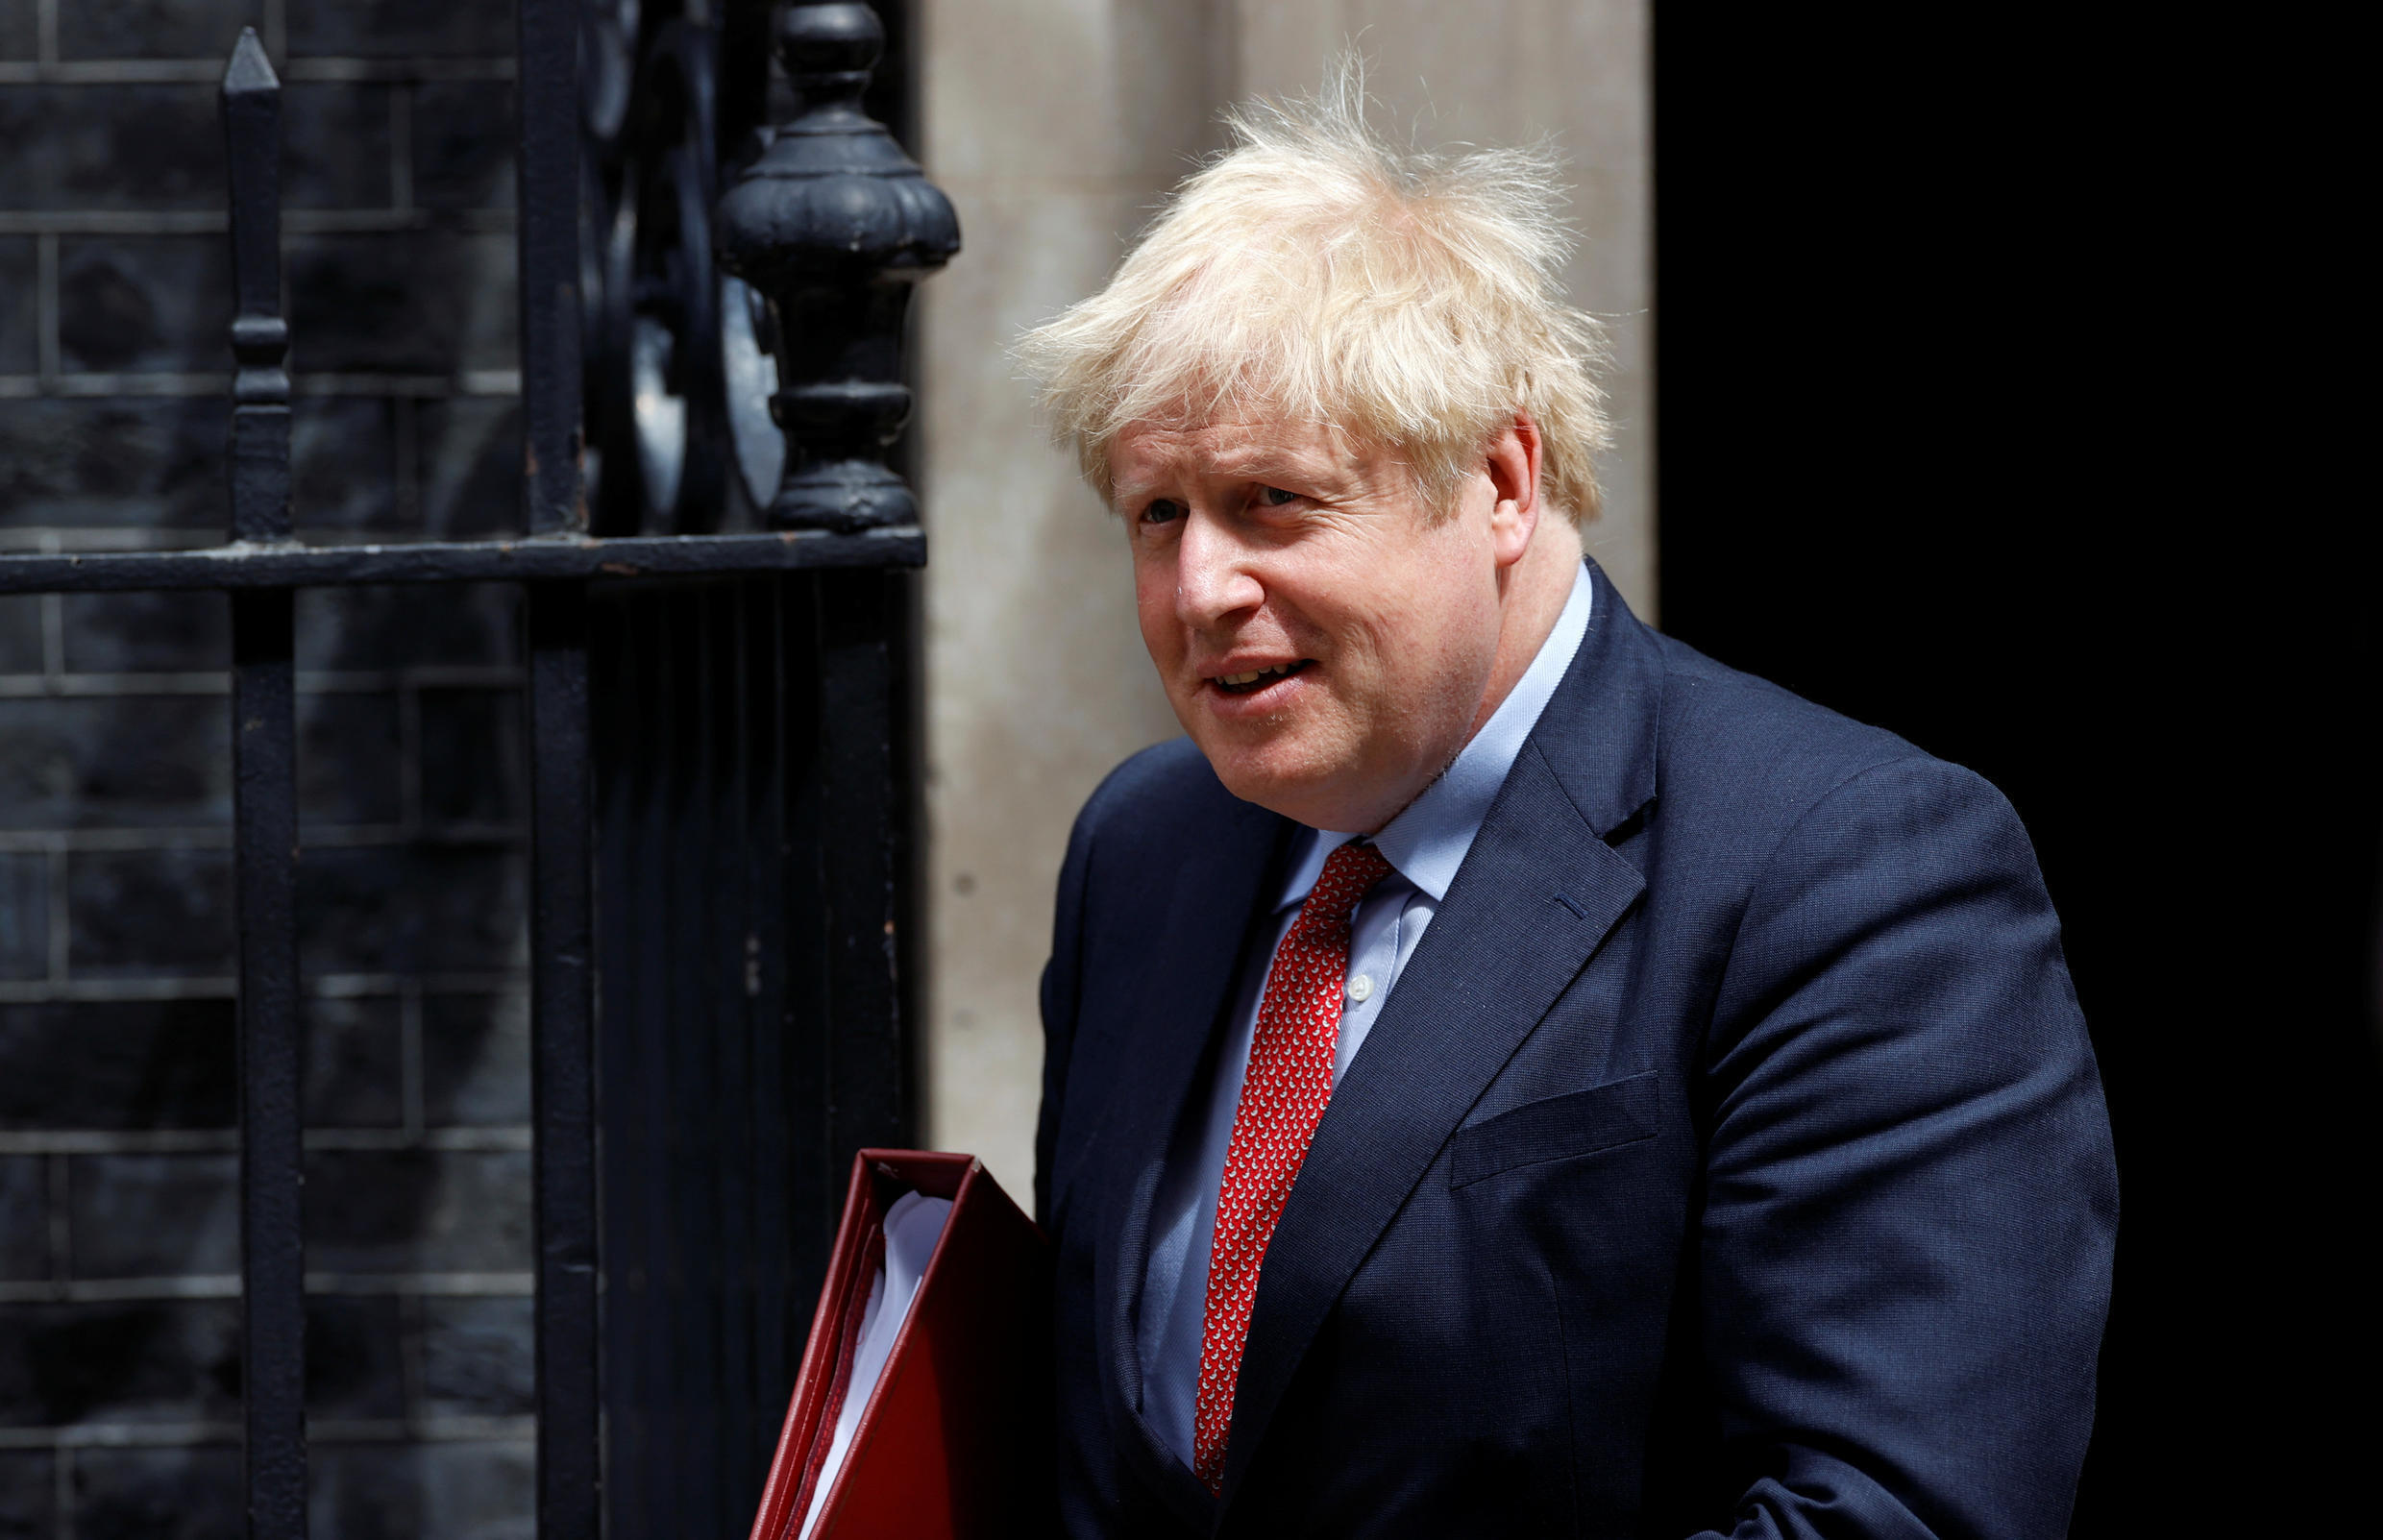 Britain's Prime Minister Boris Johnson leaves Downing Street, in London, Britain on July 15, 2020.